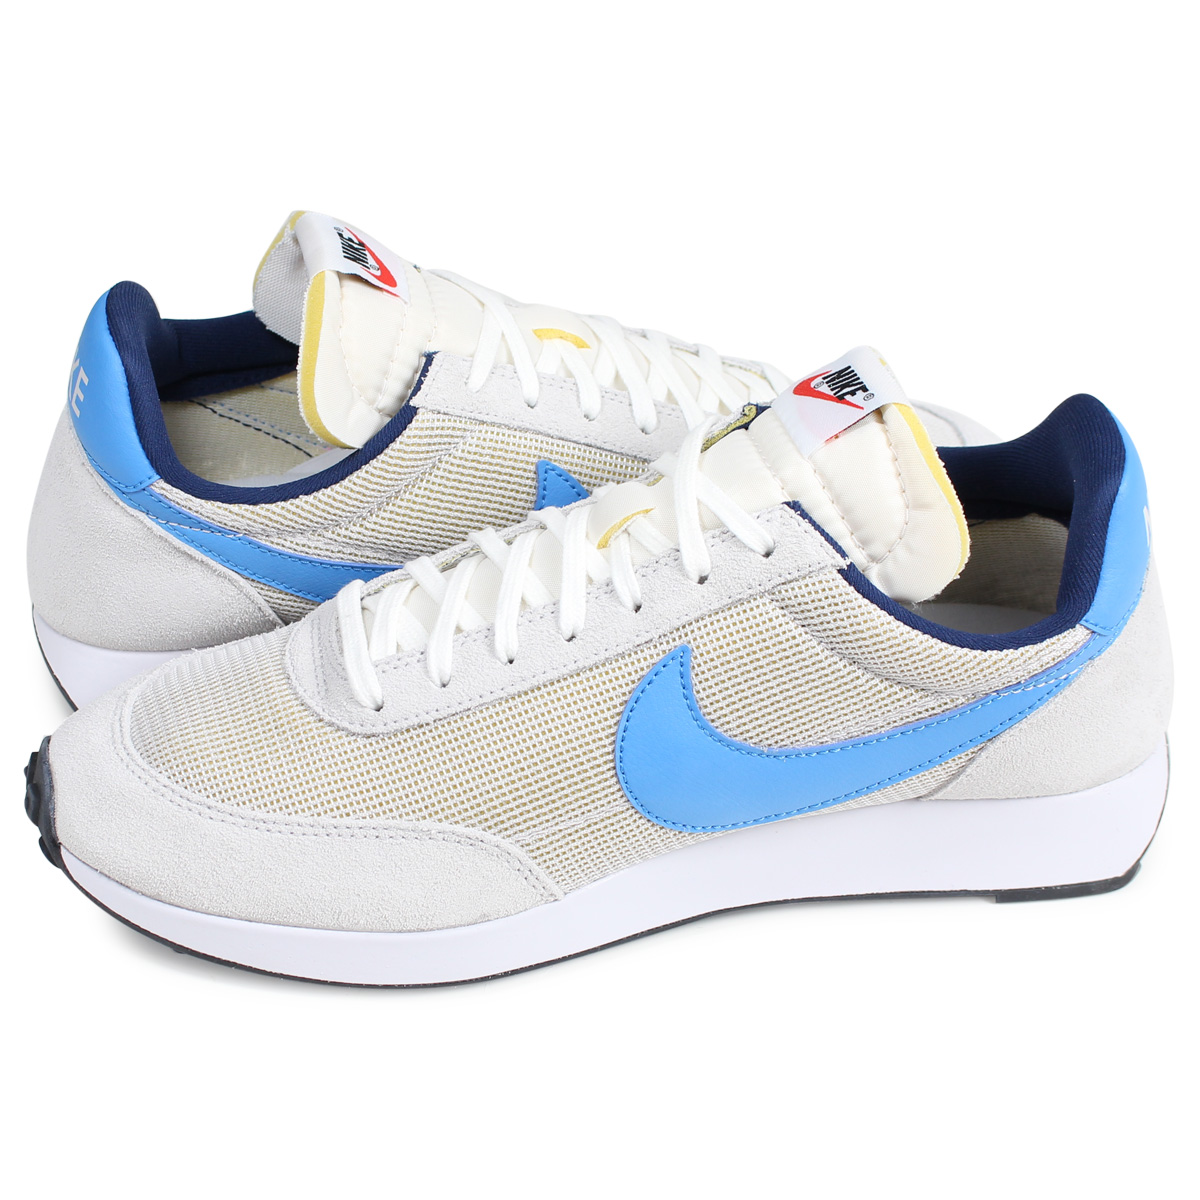 479ac9b46 Nike NIKE air tale wind sneakers men gap Dis AIR TAILWIND 79 OG light gray  BQ5878-001  load planned Shinnyu load in reservation product 3 20  containing  ...